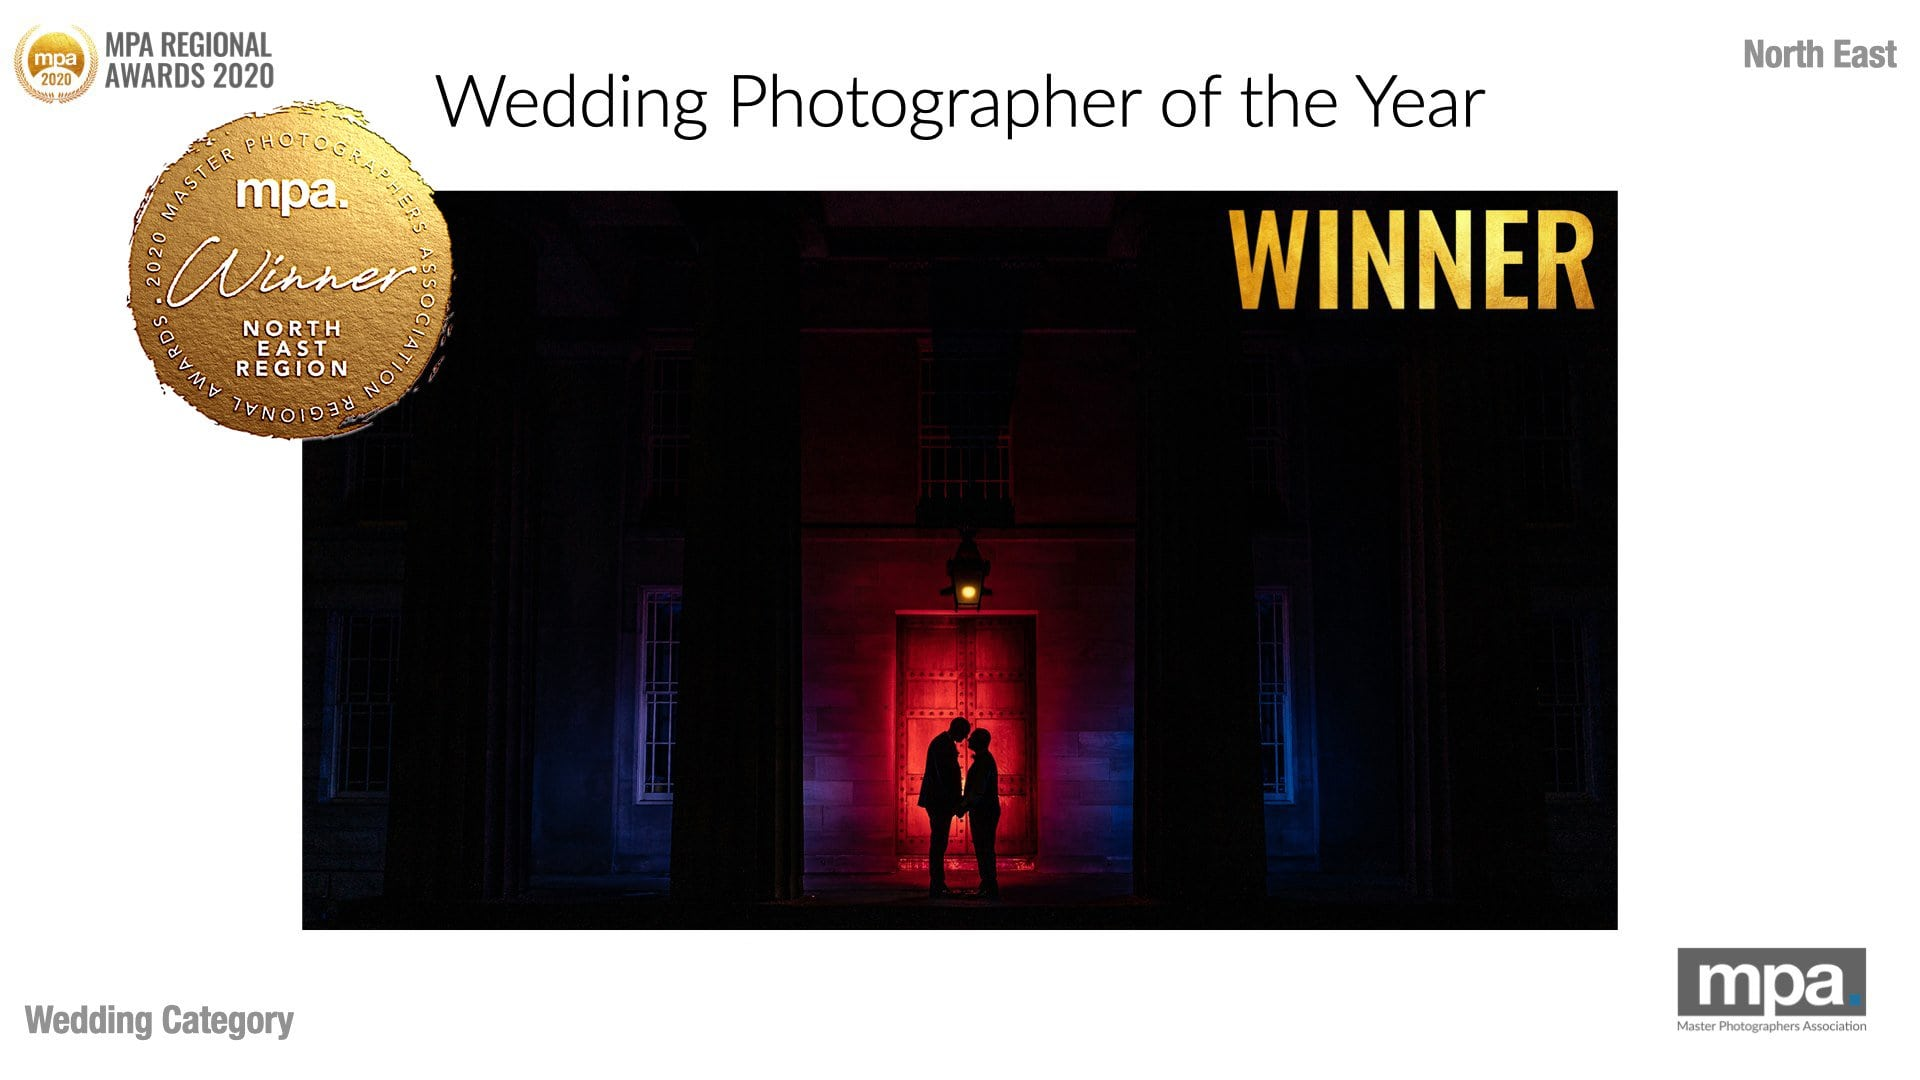 North East Wedding Photographer Of The Year